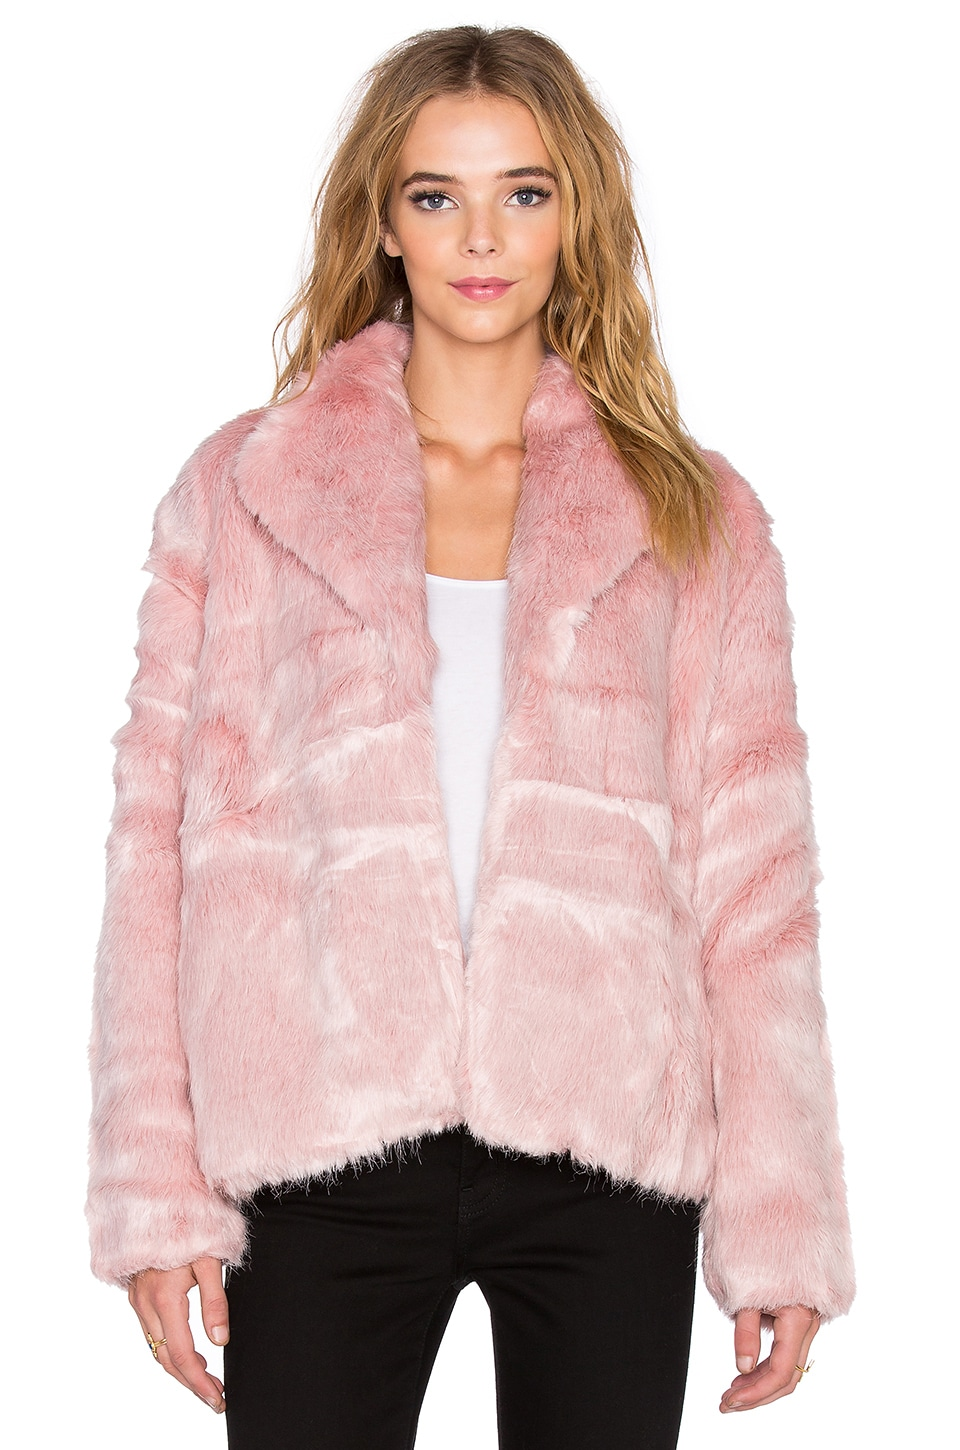 State of Being Powderpuff Faux Fur Coat in Pink | REVOLVE